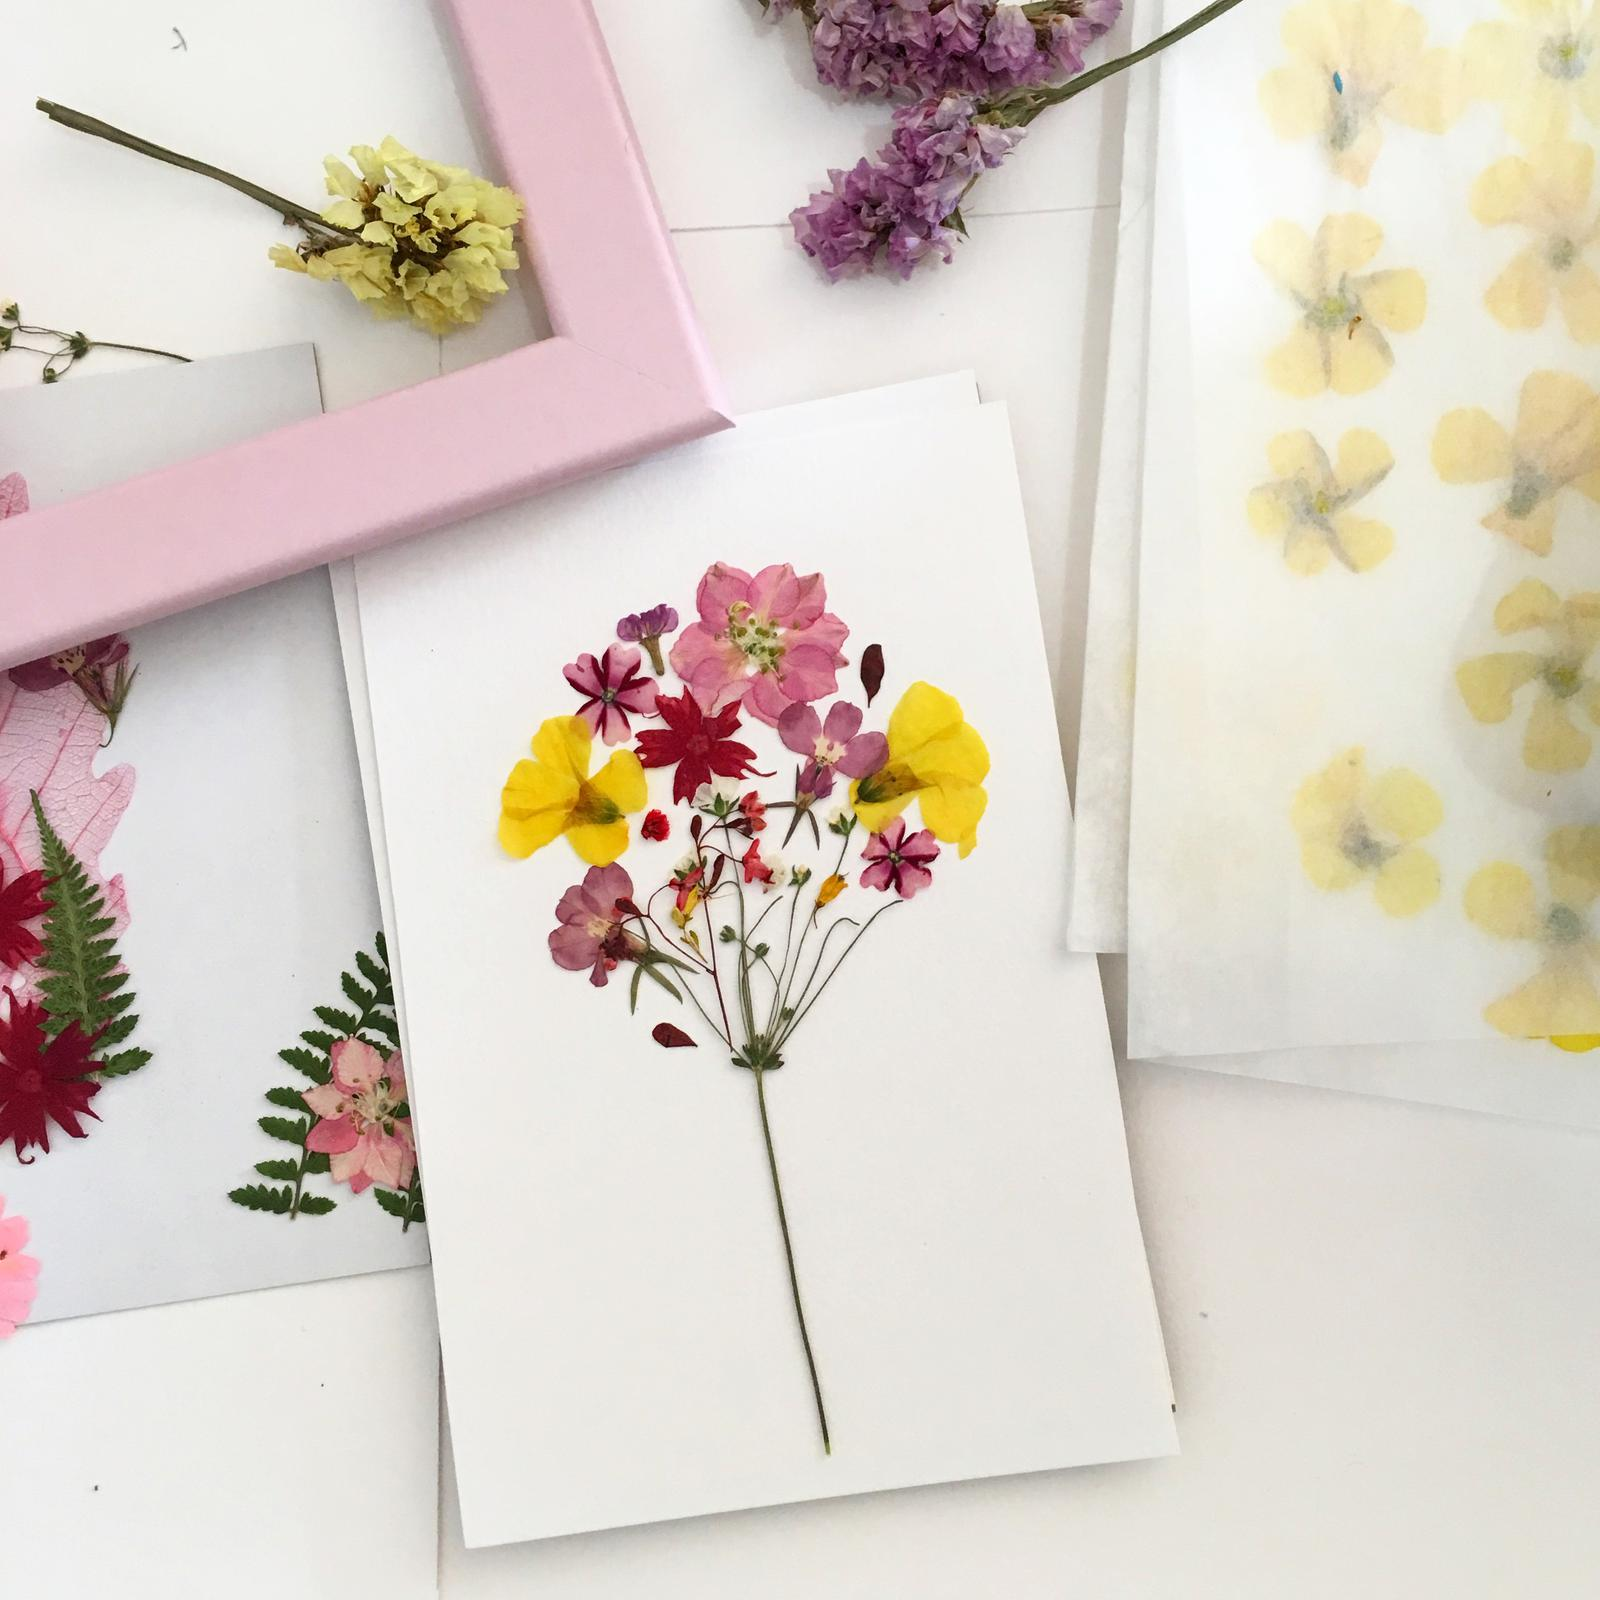 Behind the scenes of making floral frames